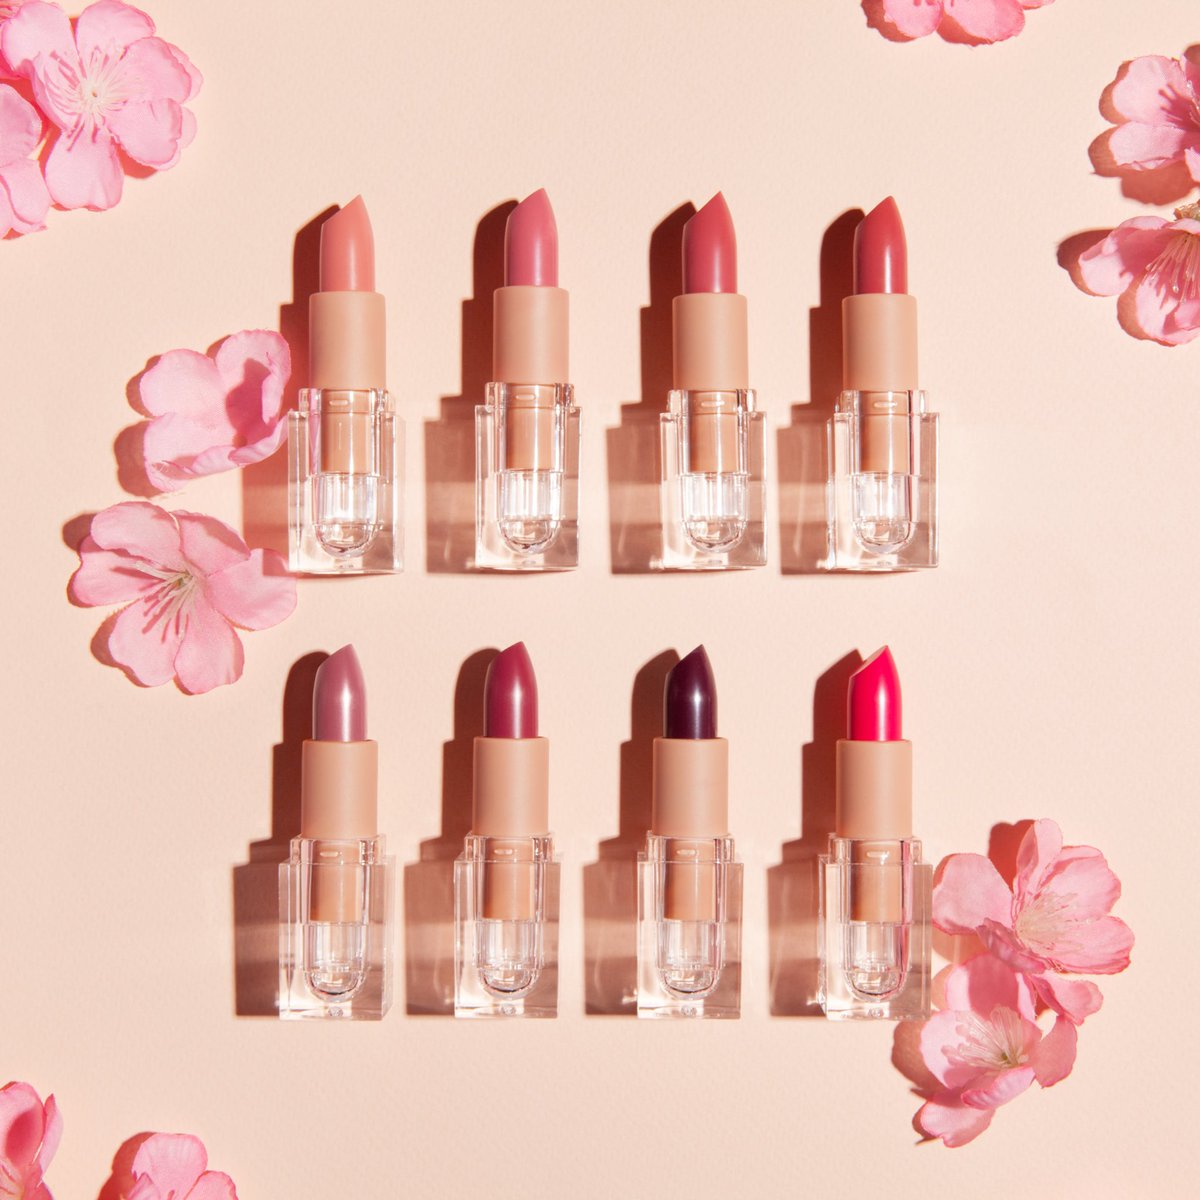 RT @kkwbeauty: Pink Crème Lipstick Sets are almost SOLD OUT! Shop now: https://t.co/qph7jvGhlU https://t.co/ZYD3OQAIiq